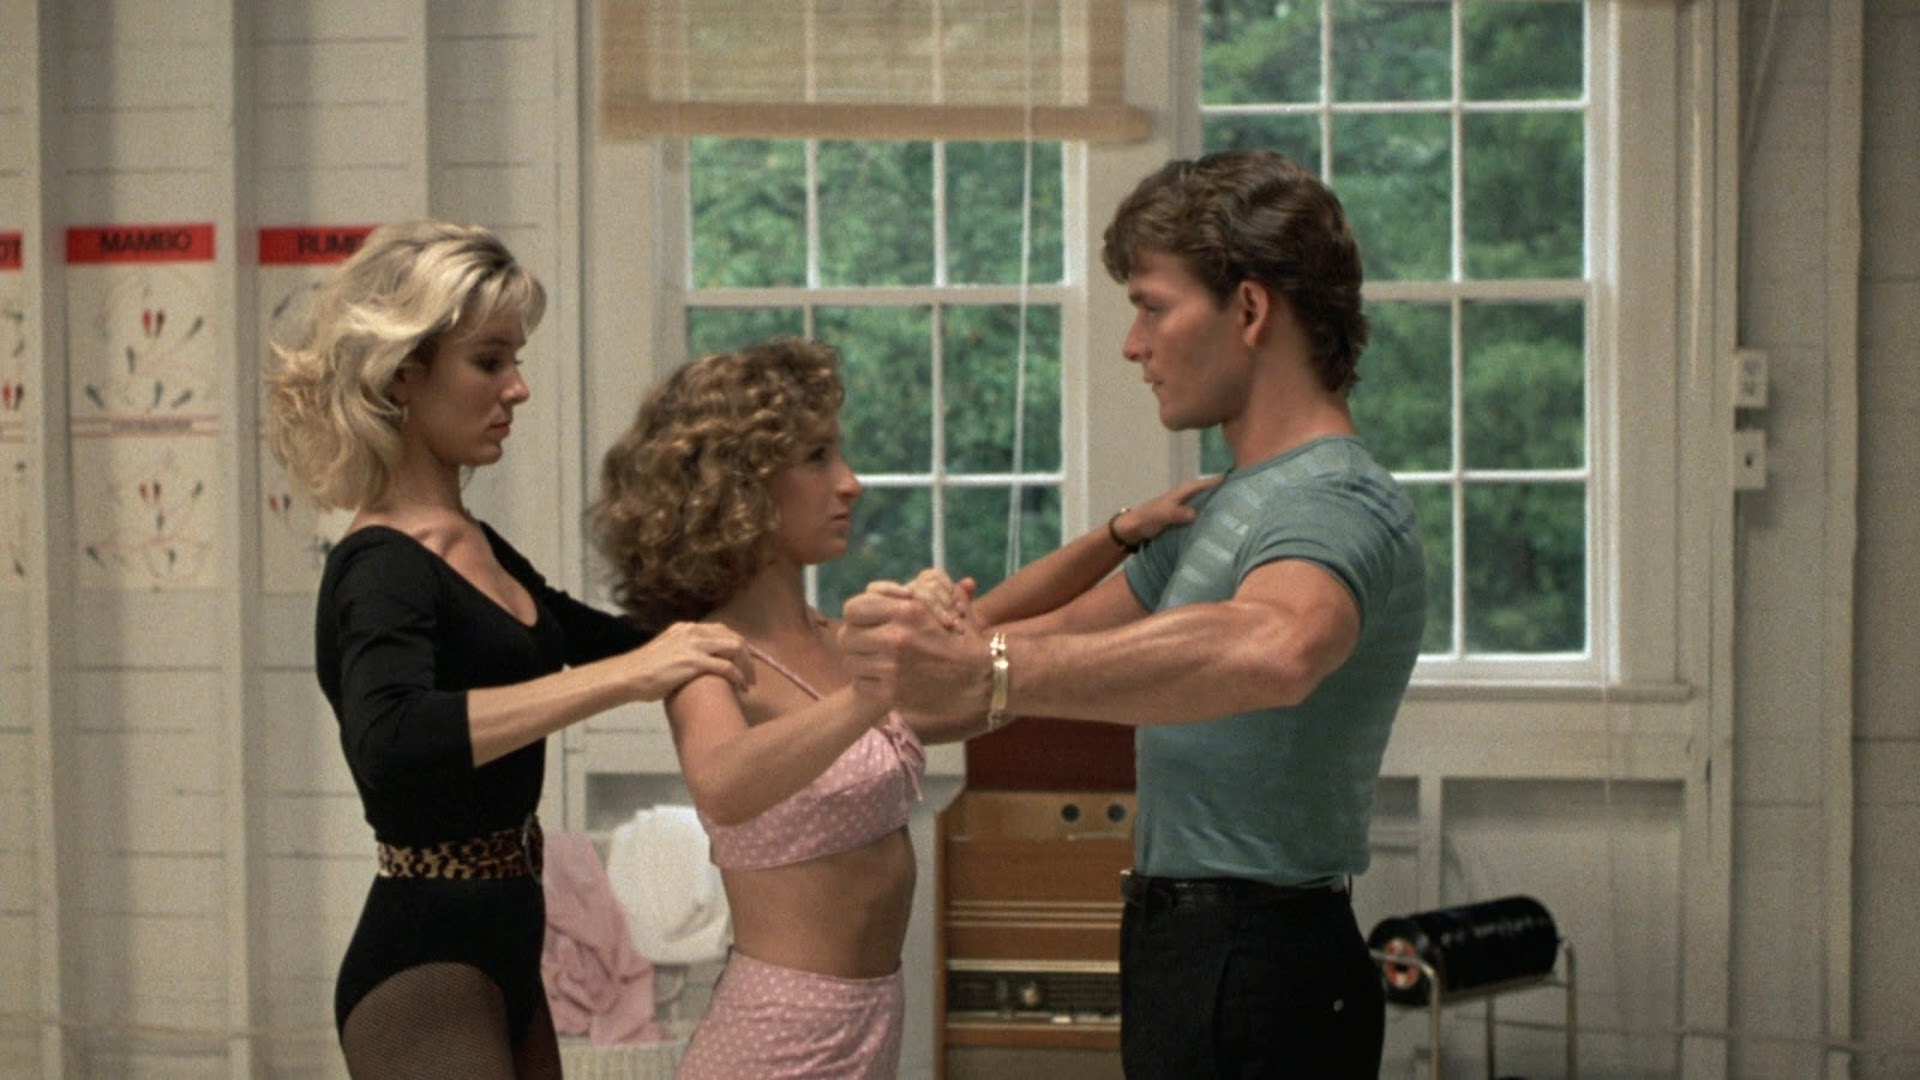 deschidere material, dirty dancing